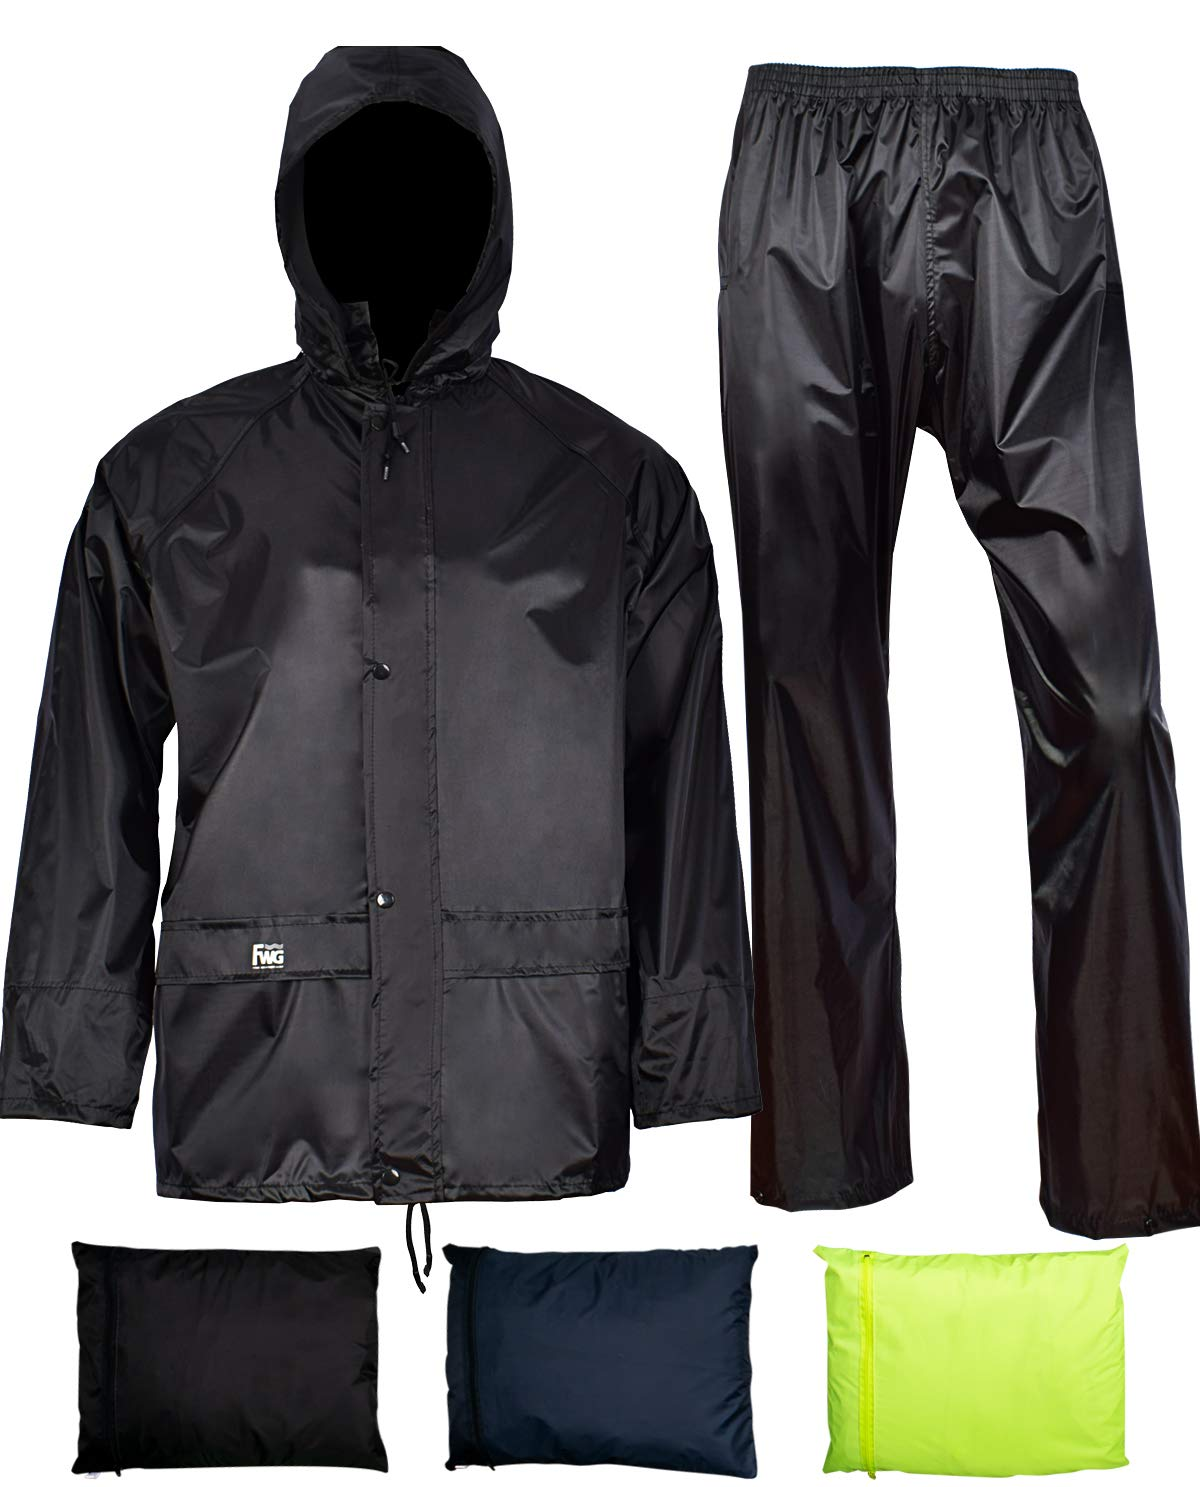 Rain Jacket with Pants for Men Women Waterproof Rain Coat 3-Pieces Ultra-Lite Suits (Large, Black) by FWG (Image #1)